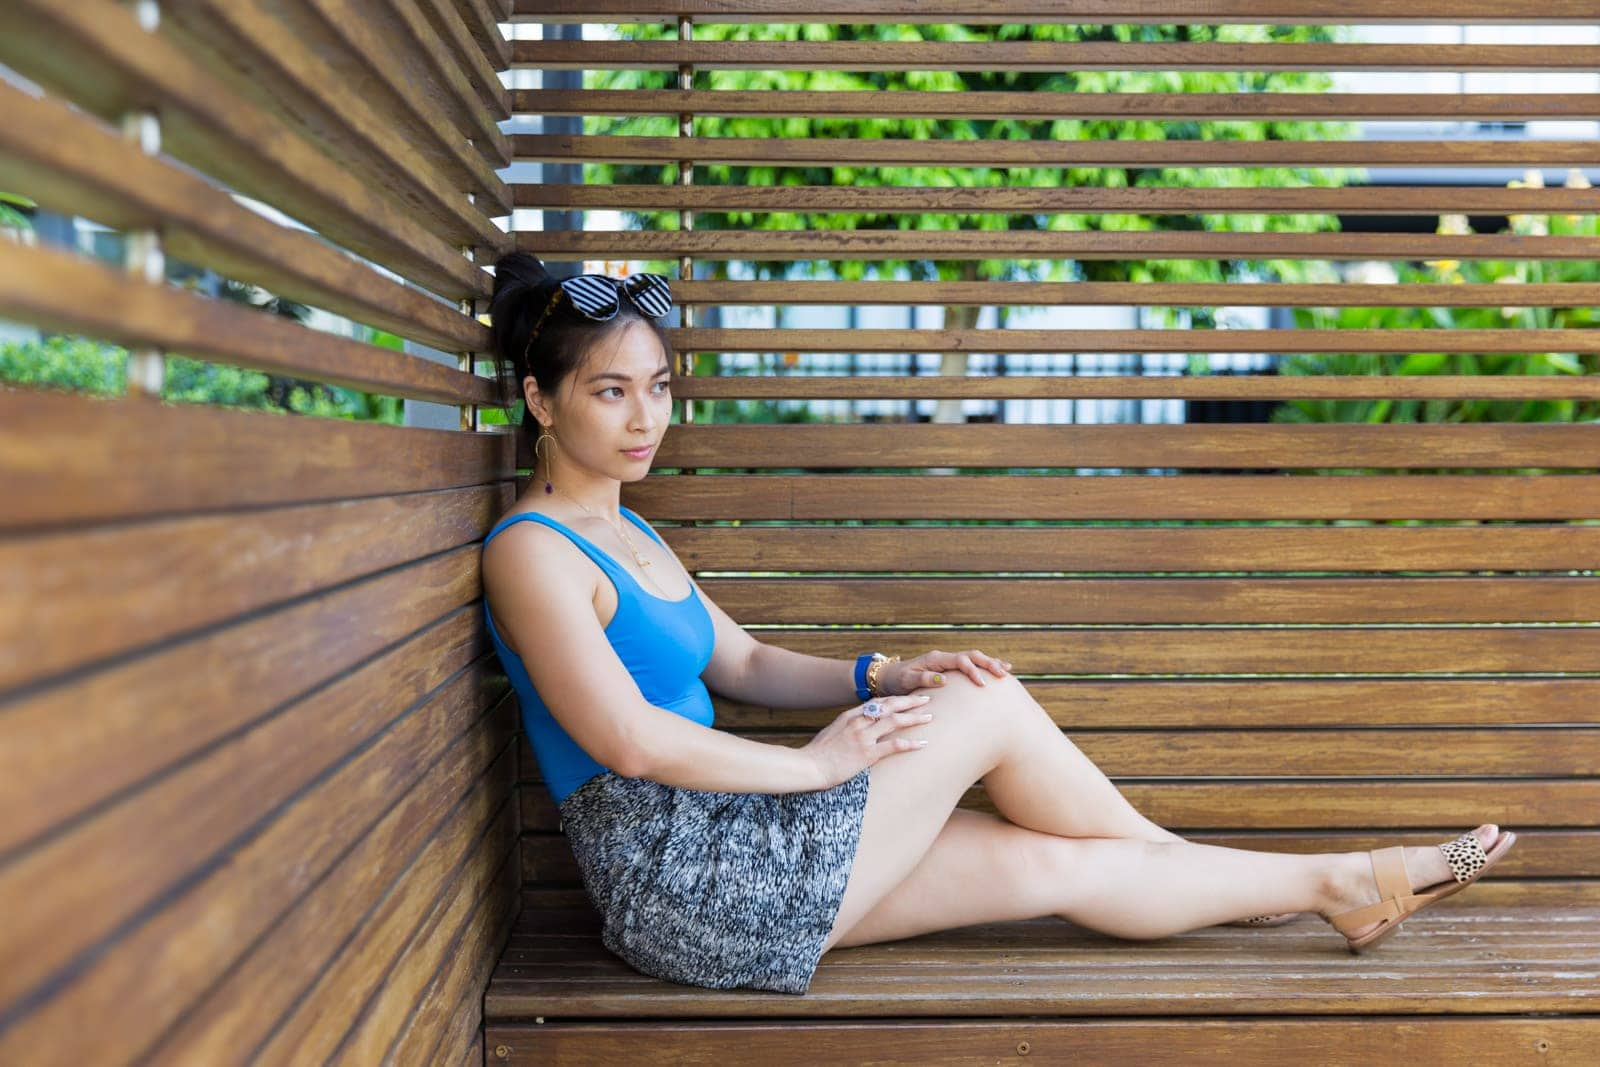 A woman with dark hair in a bun, wearing a blue bodysuit and a black and white textured skirt. She is sitting on a wooden bench in a cabana, with her legs outstretched and ankles crossed. She is wearing nude coloured sandals with a spotted strap over the toes